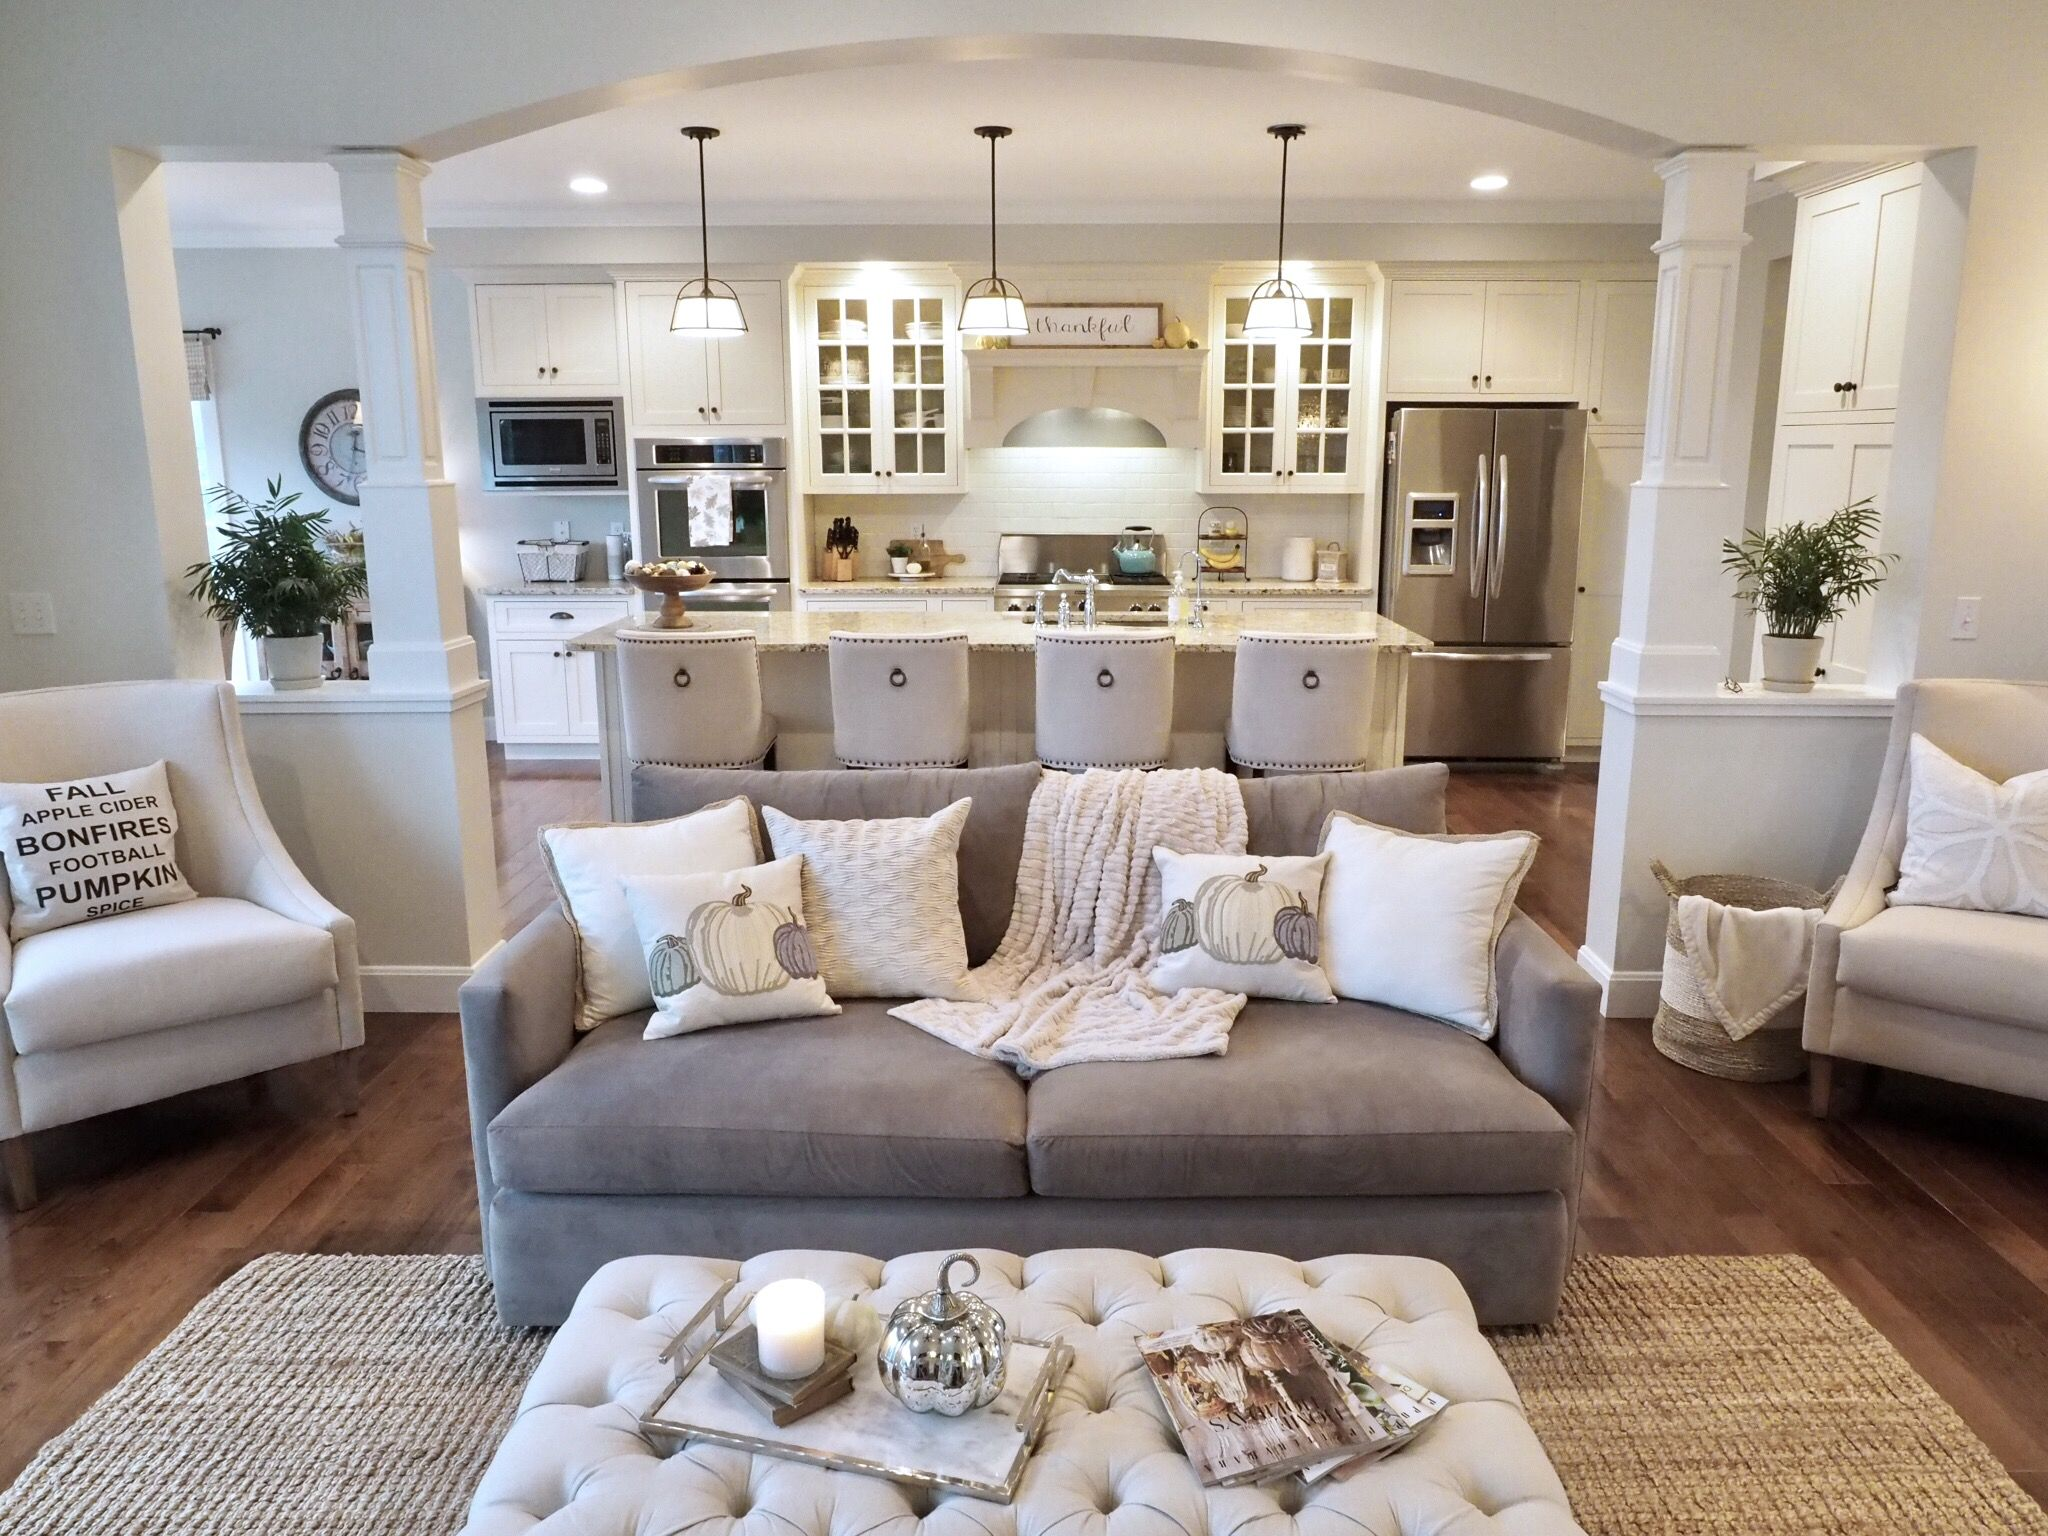 Open Concept Floorplan Open Floorplan Living Room Family Room White Kitchen Living Room Floor Plans Open Concept Living Room Open Kitchen And Living Room